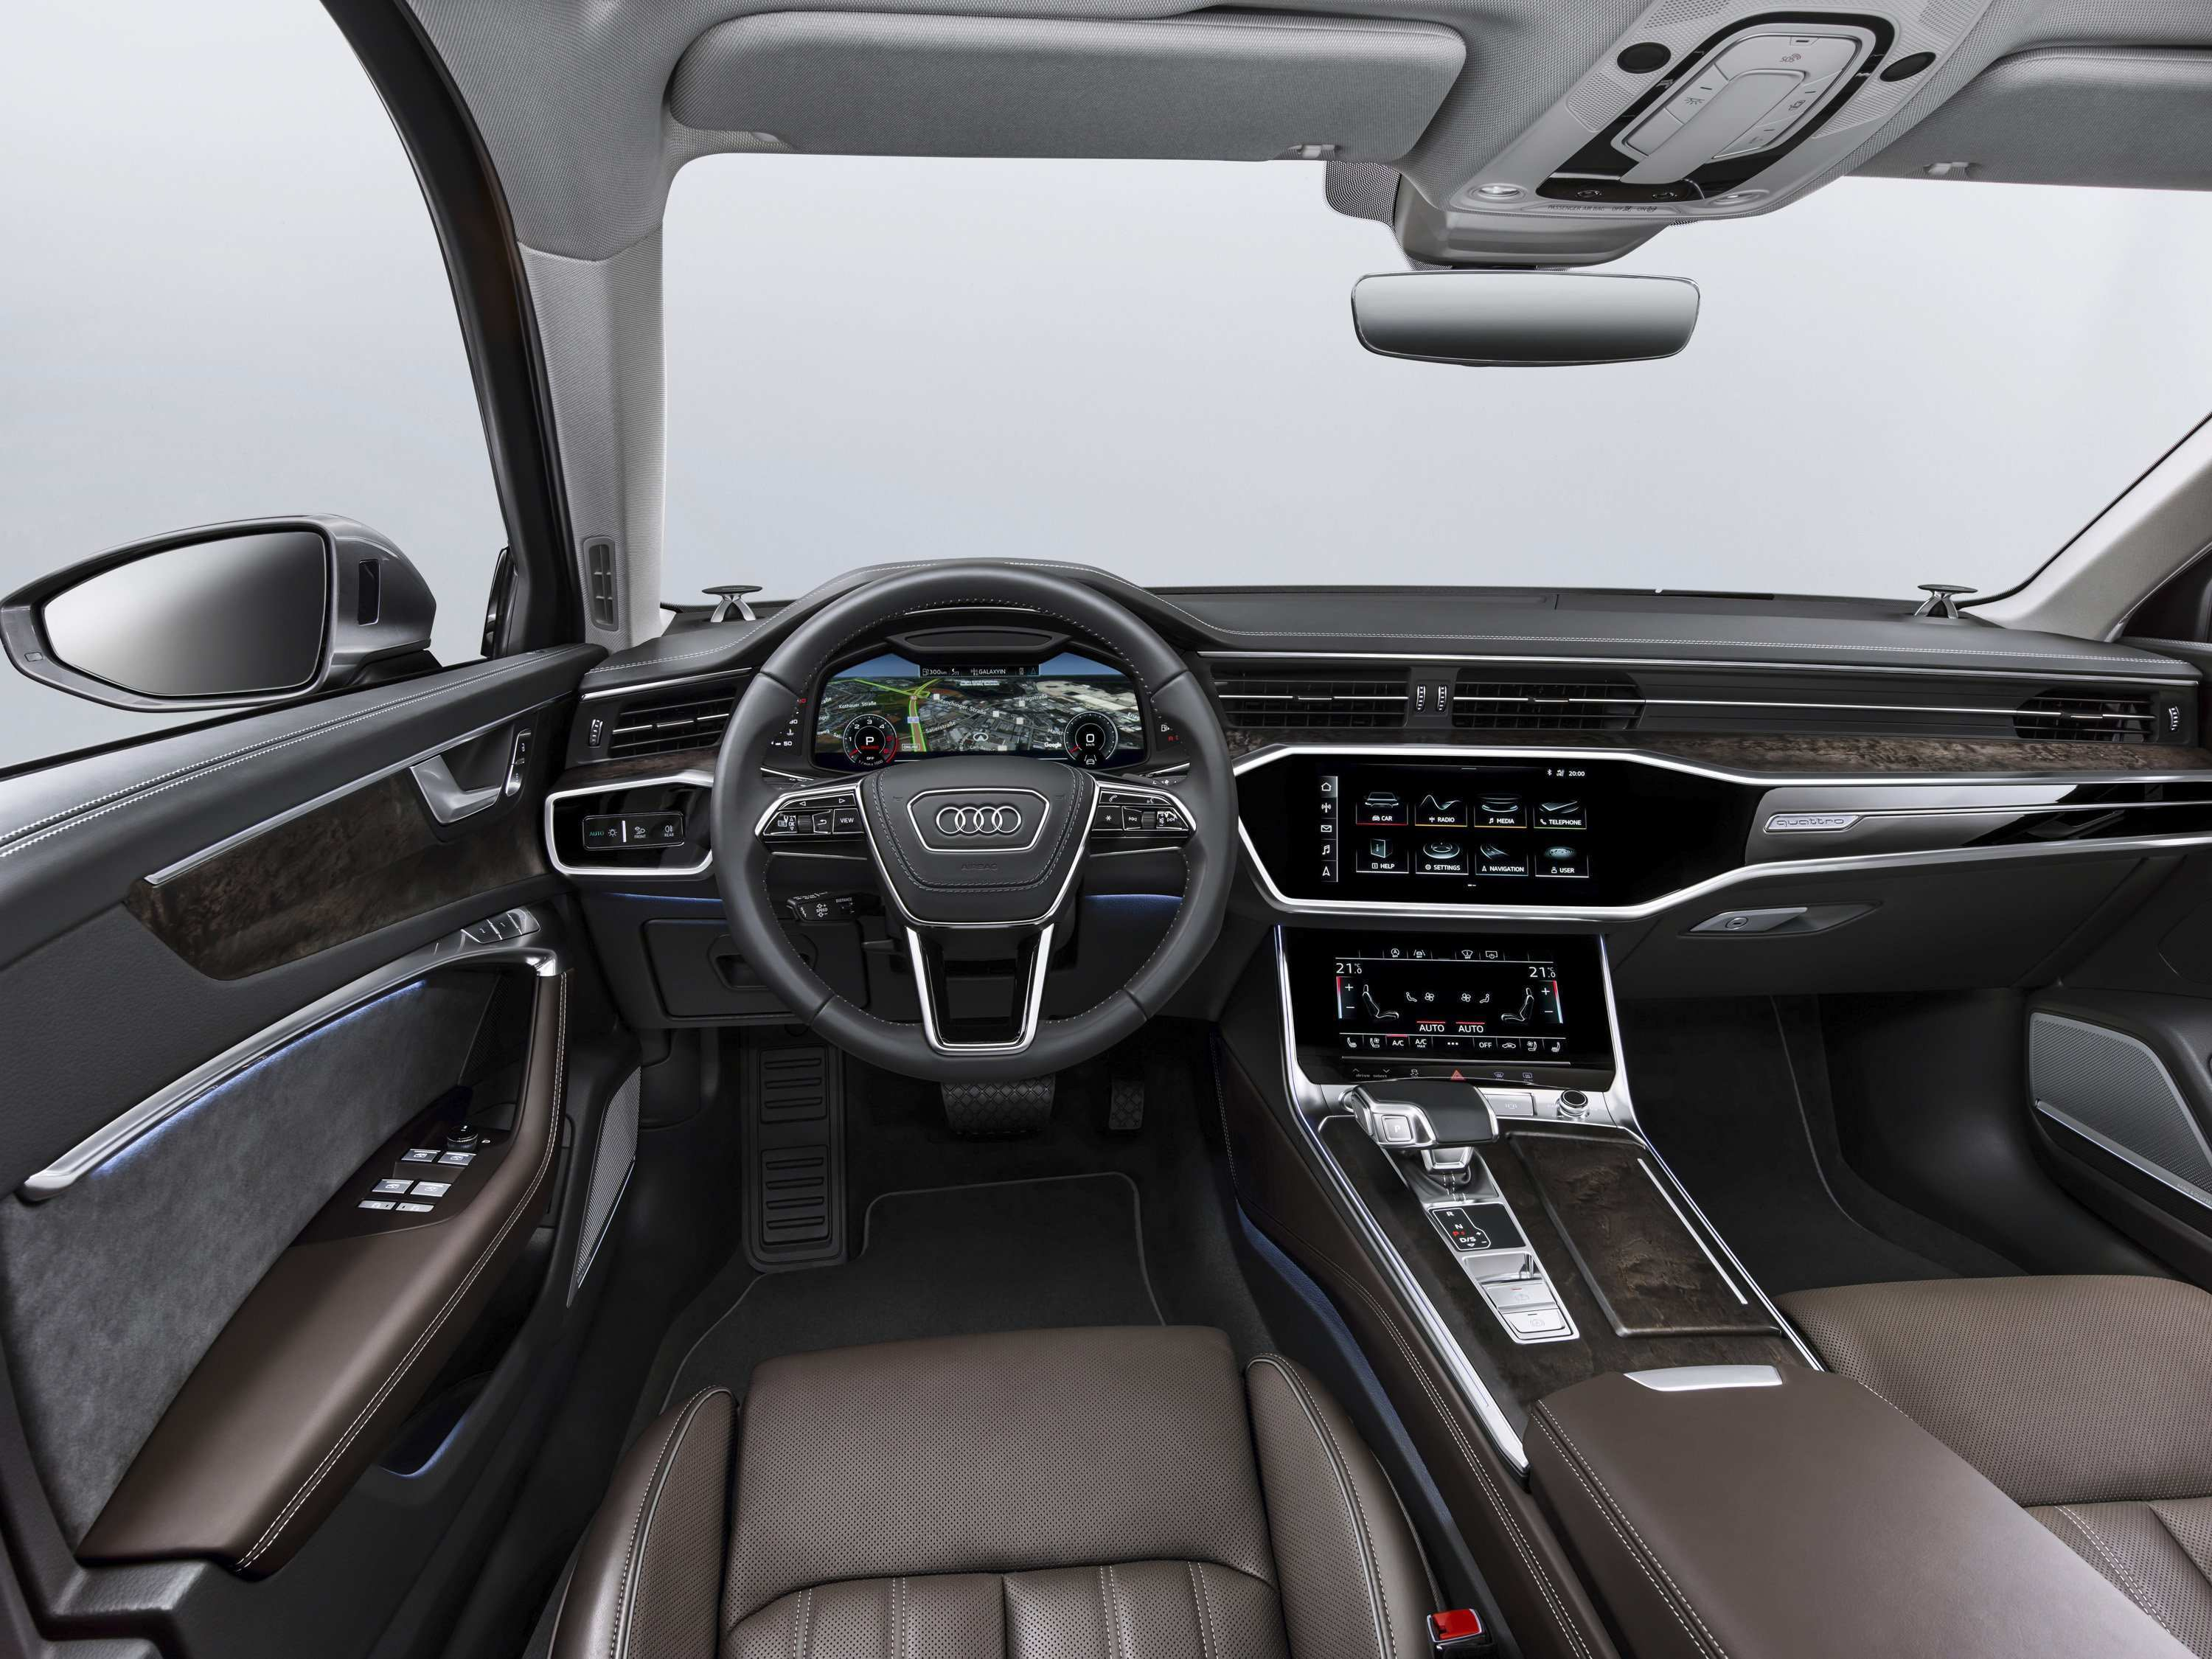 29 Best Review New Audi A4 2020 Interior Model by New Audi A4 2020 Interior